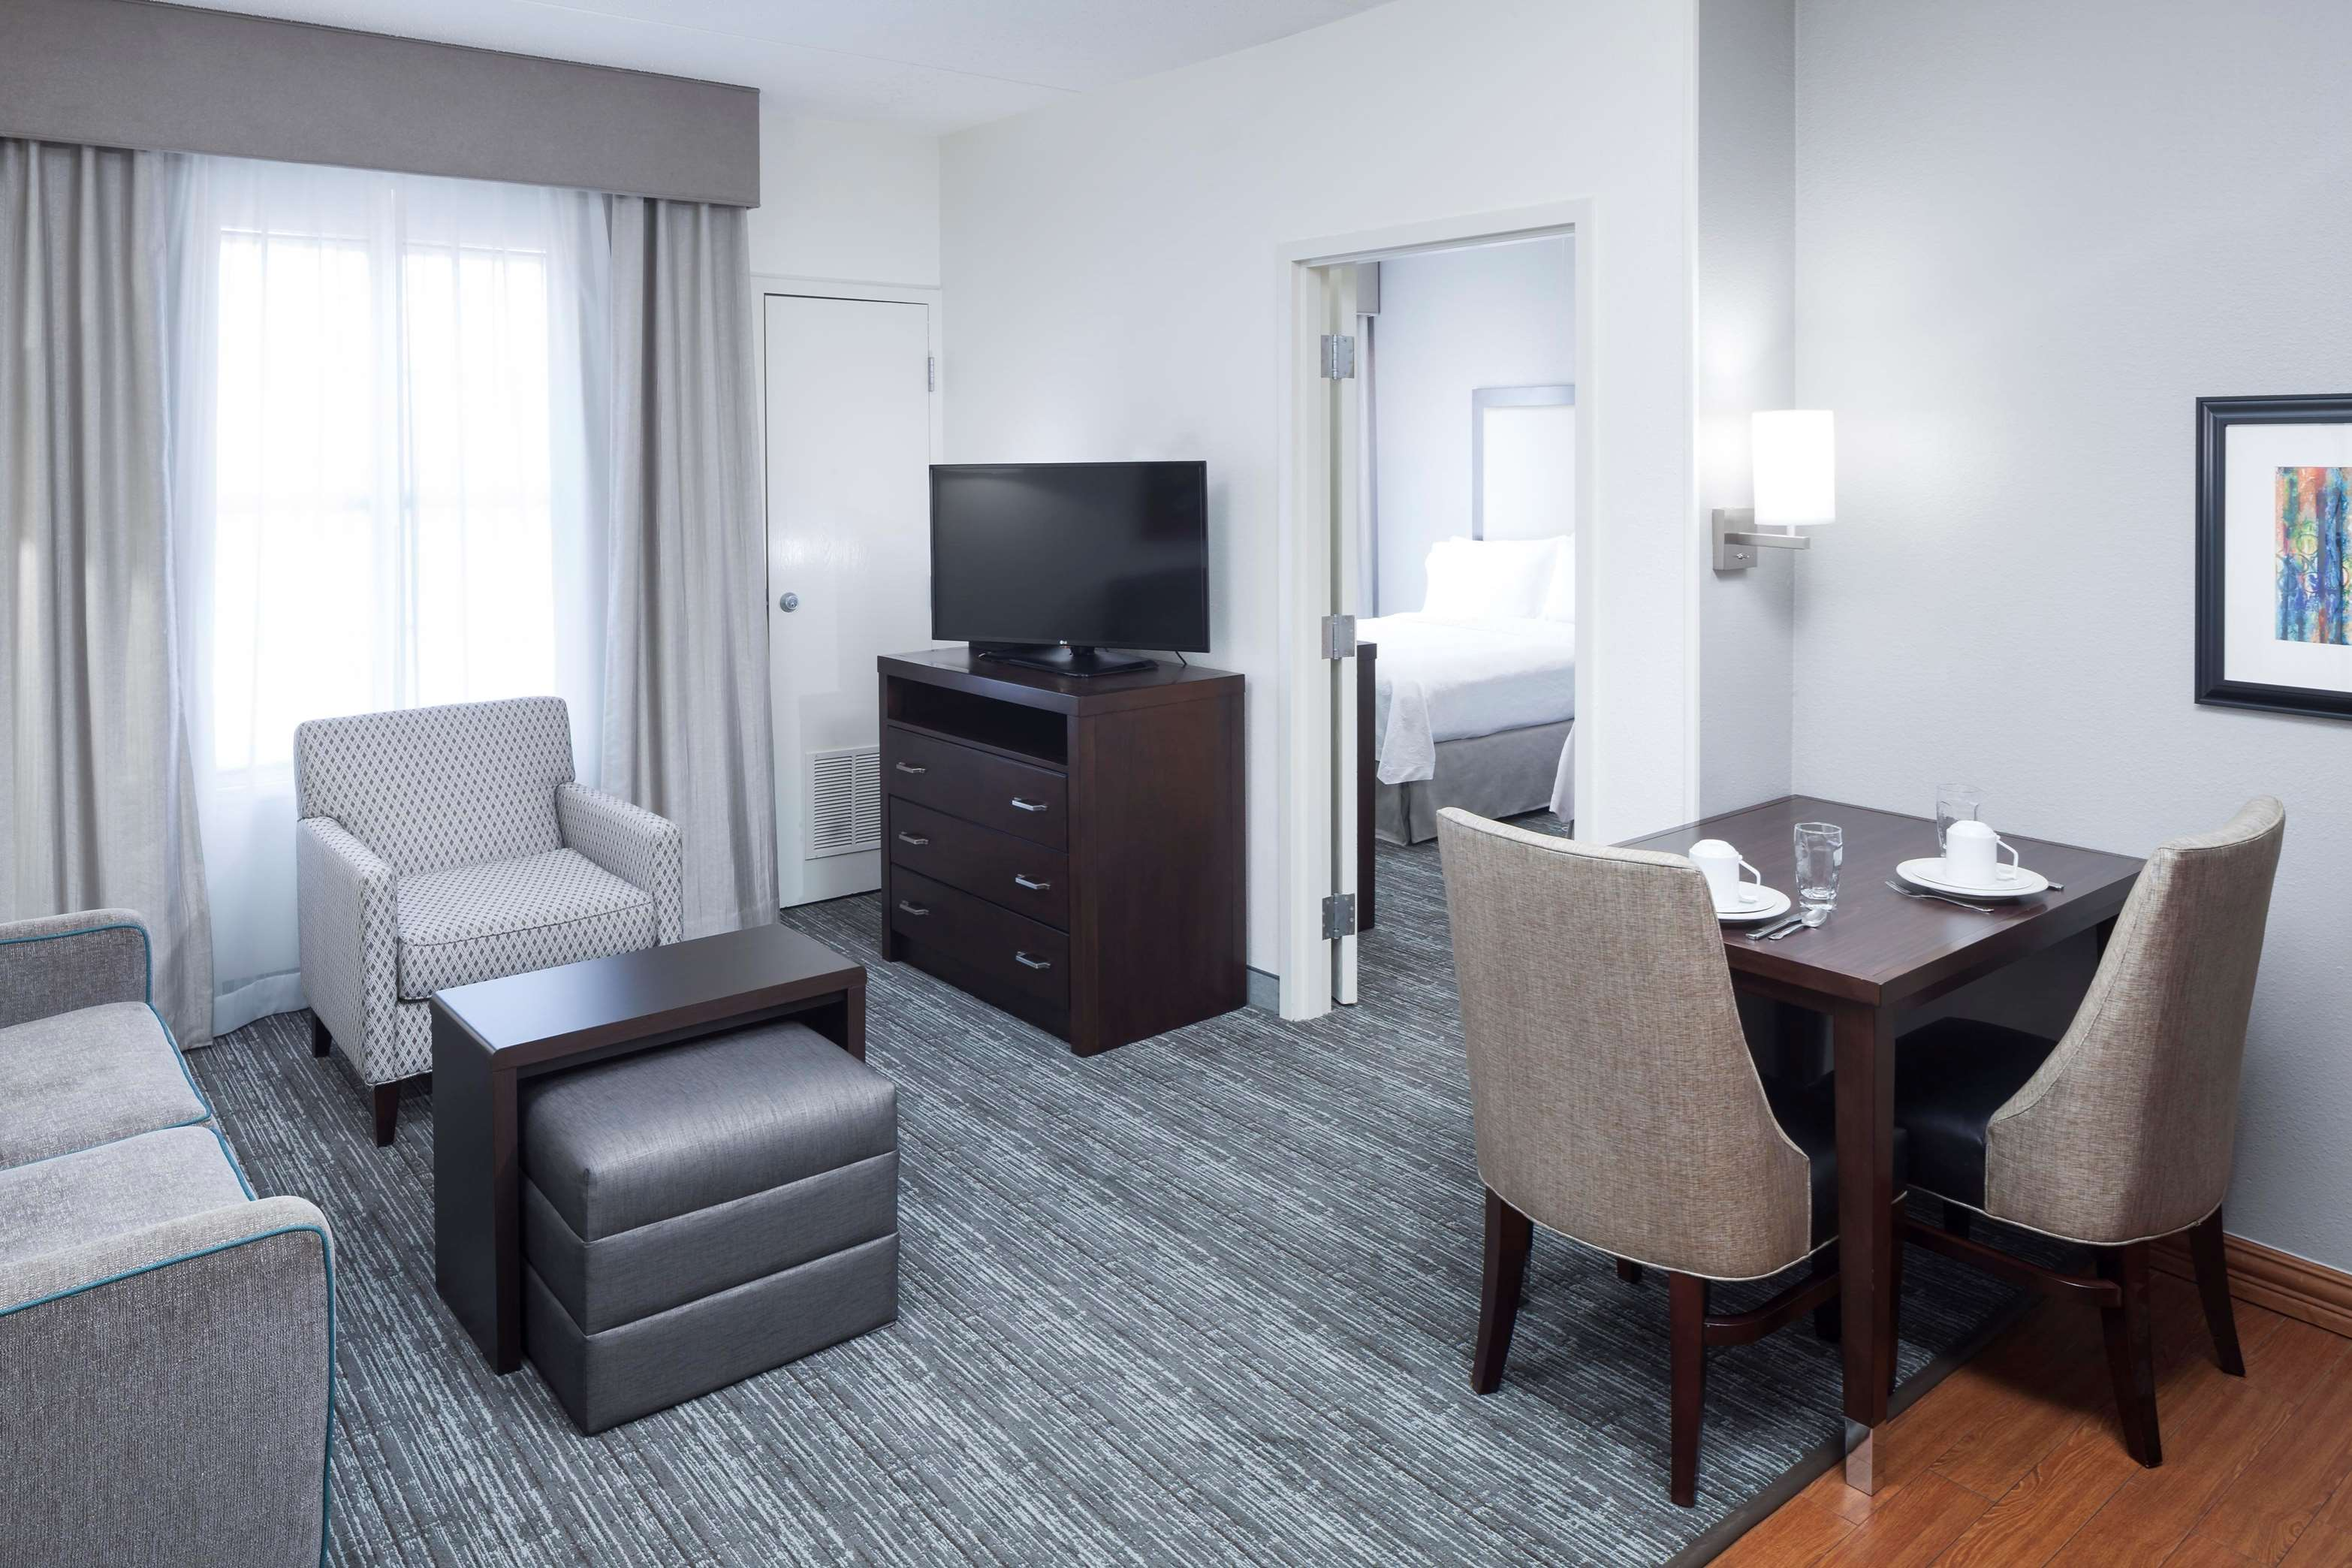 Homewood Suites By Hilton Chattanooga Hamilton Place Chattanooga Tennessee